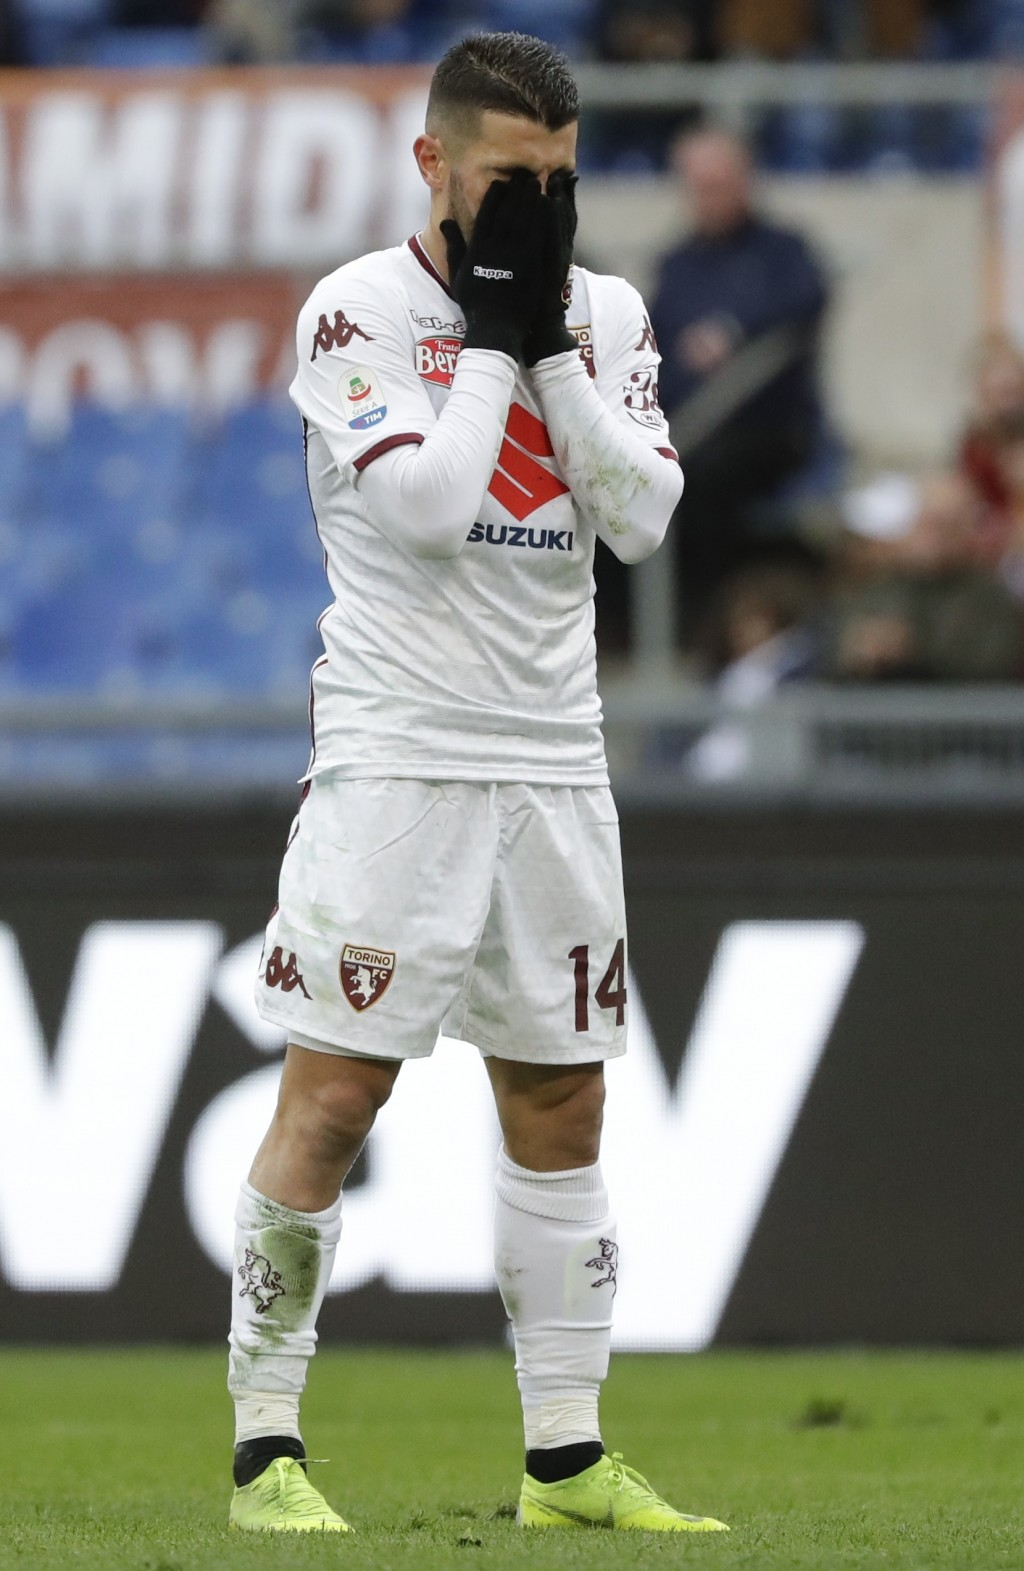 Torino's Iago Falque reacts after missing a scoring chance during a Serie A soccer match between Roma and Torino, at the Rome Olympic Stadium, Saturda